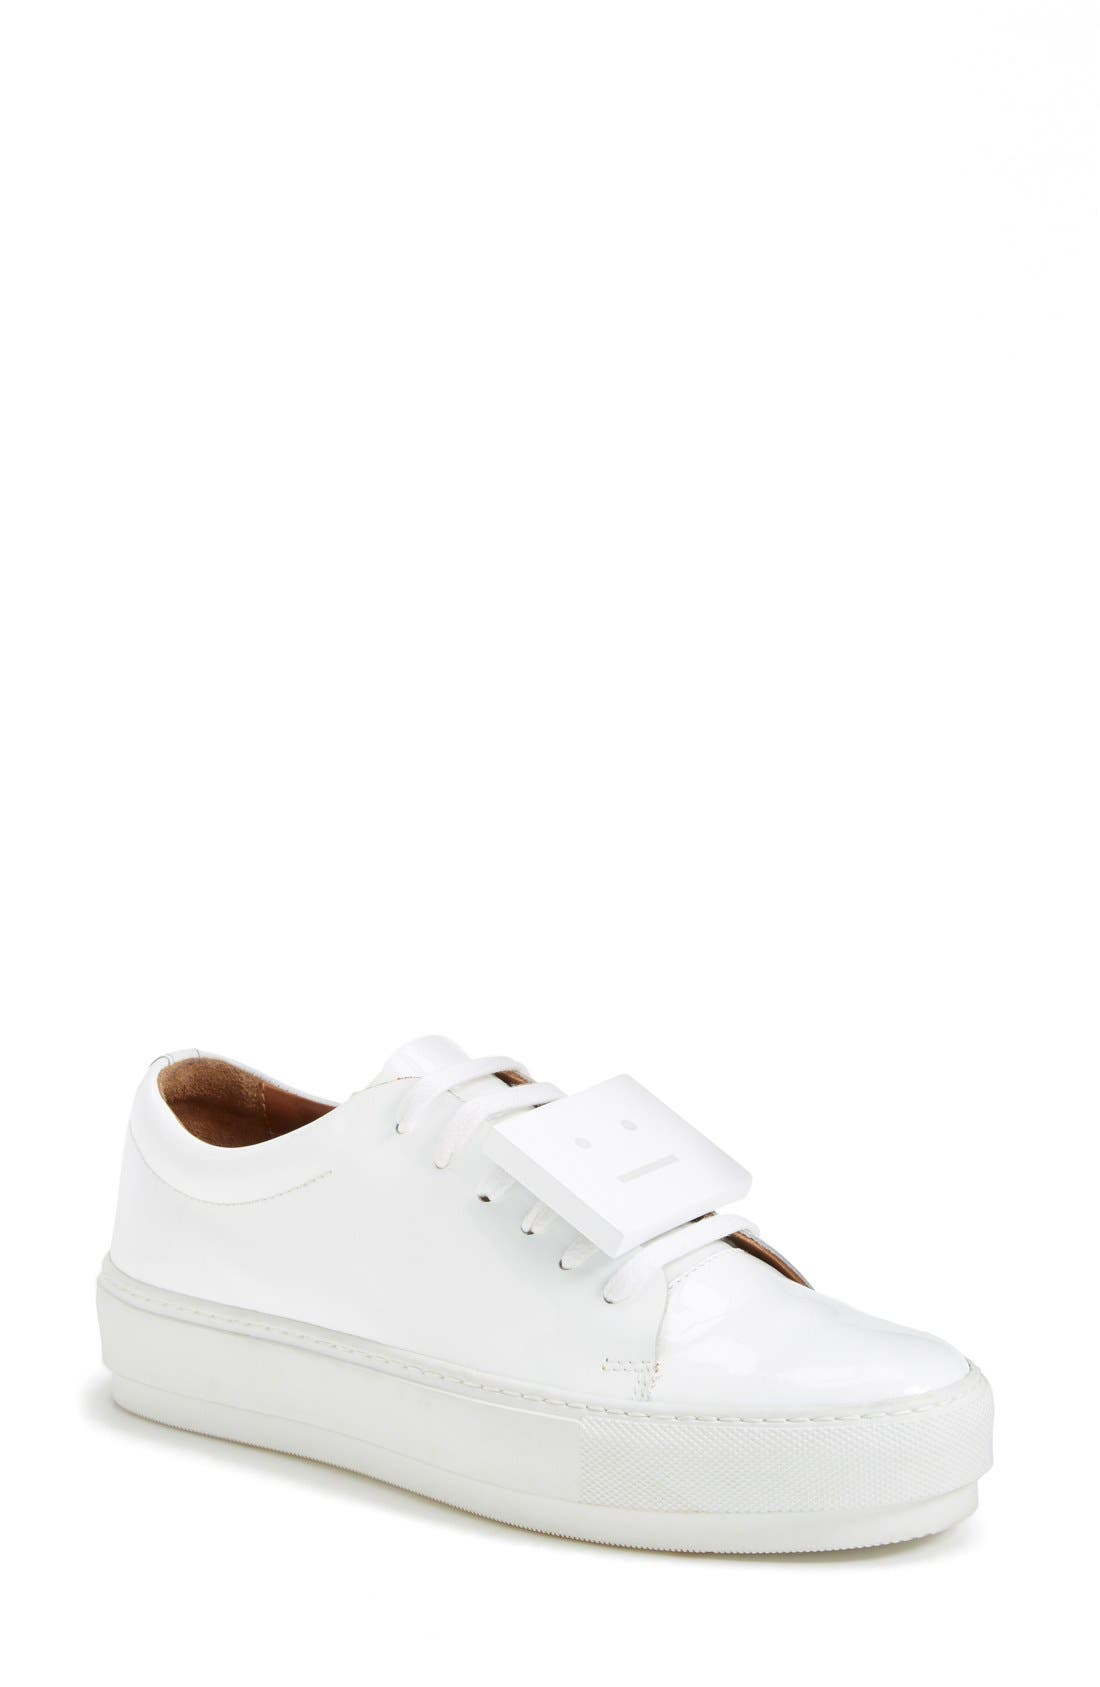 Adriana Leather Sneaker,                         Main,                         color, 100